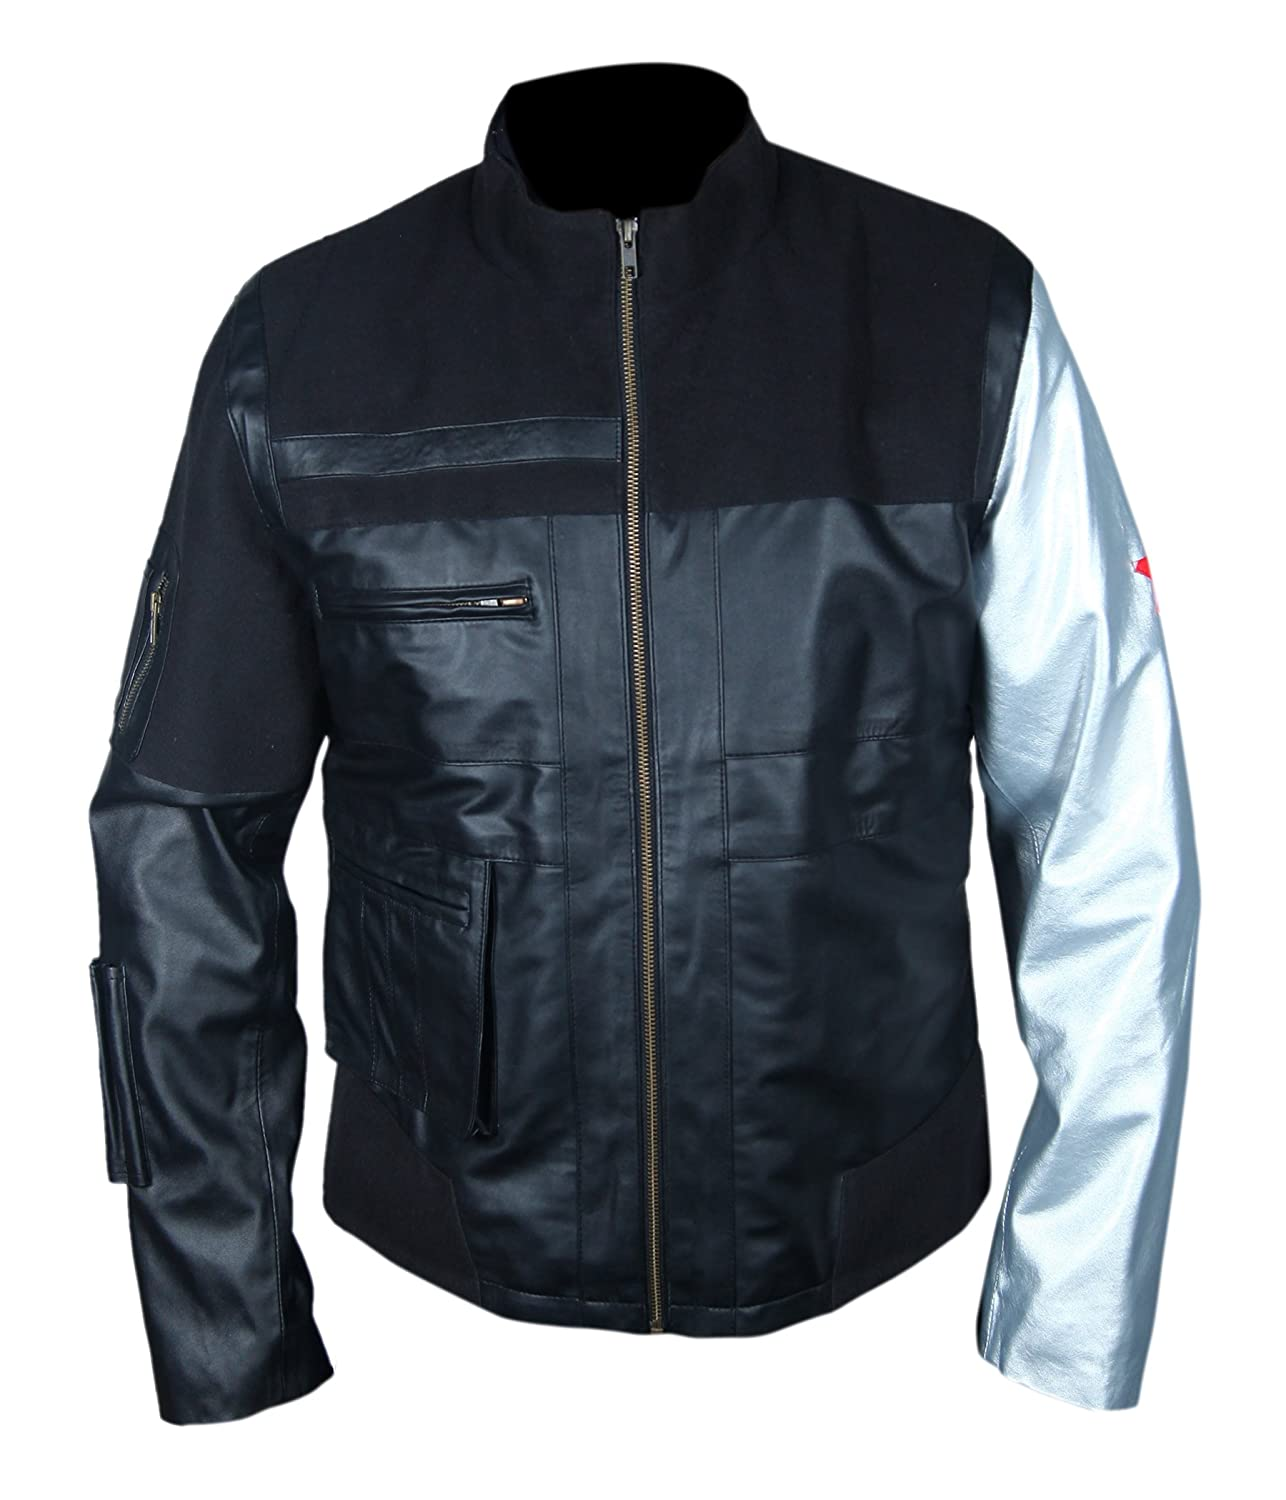 Civil War Winter Soldier Leather Jacket